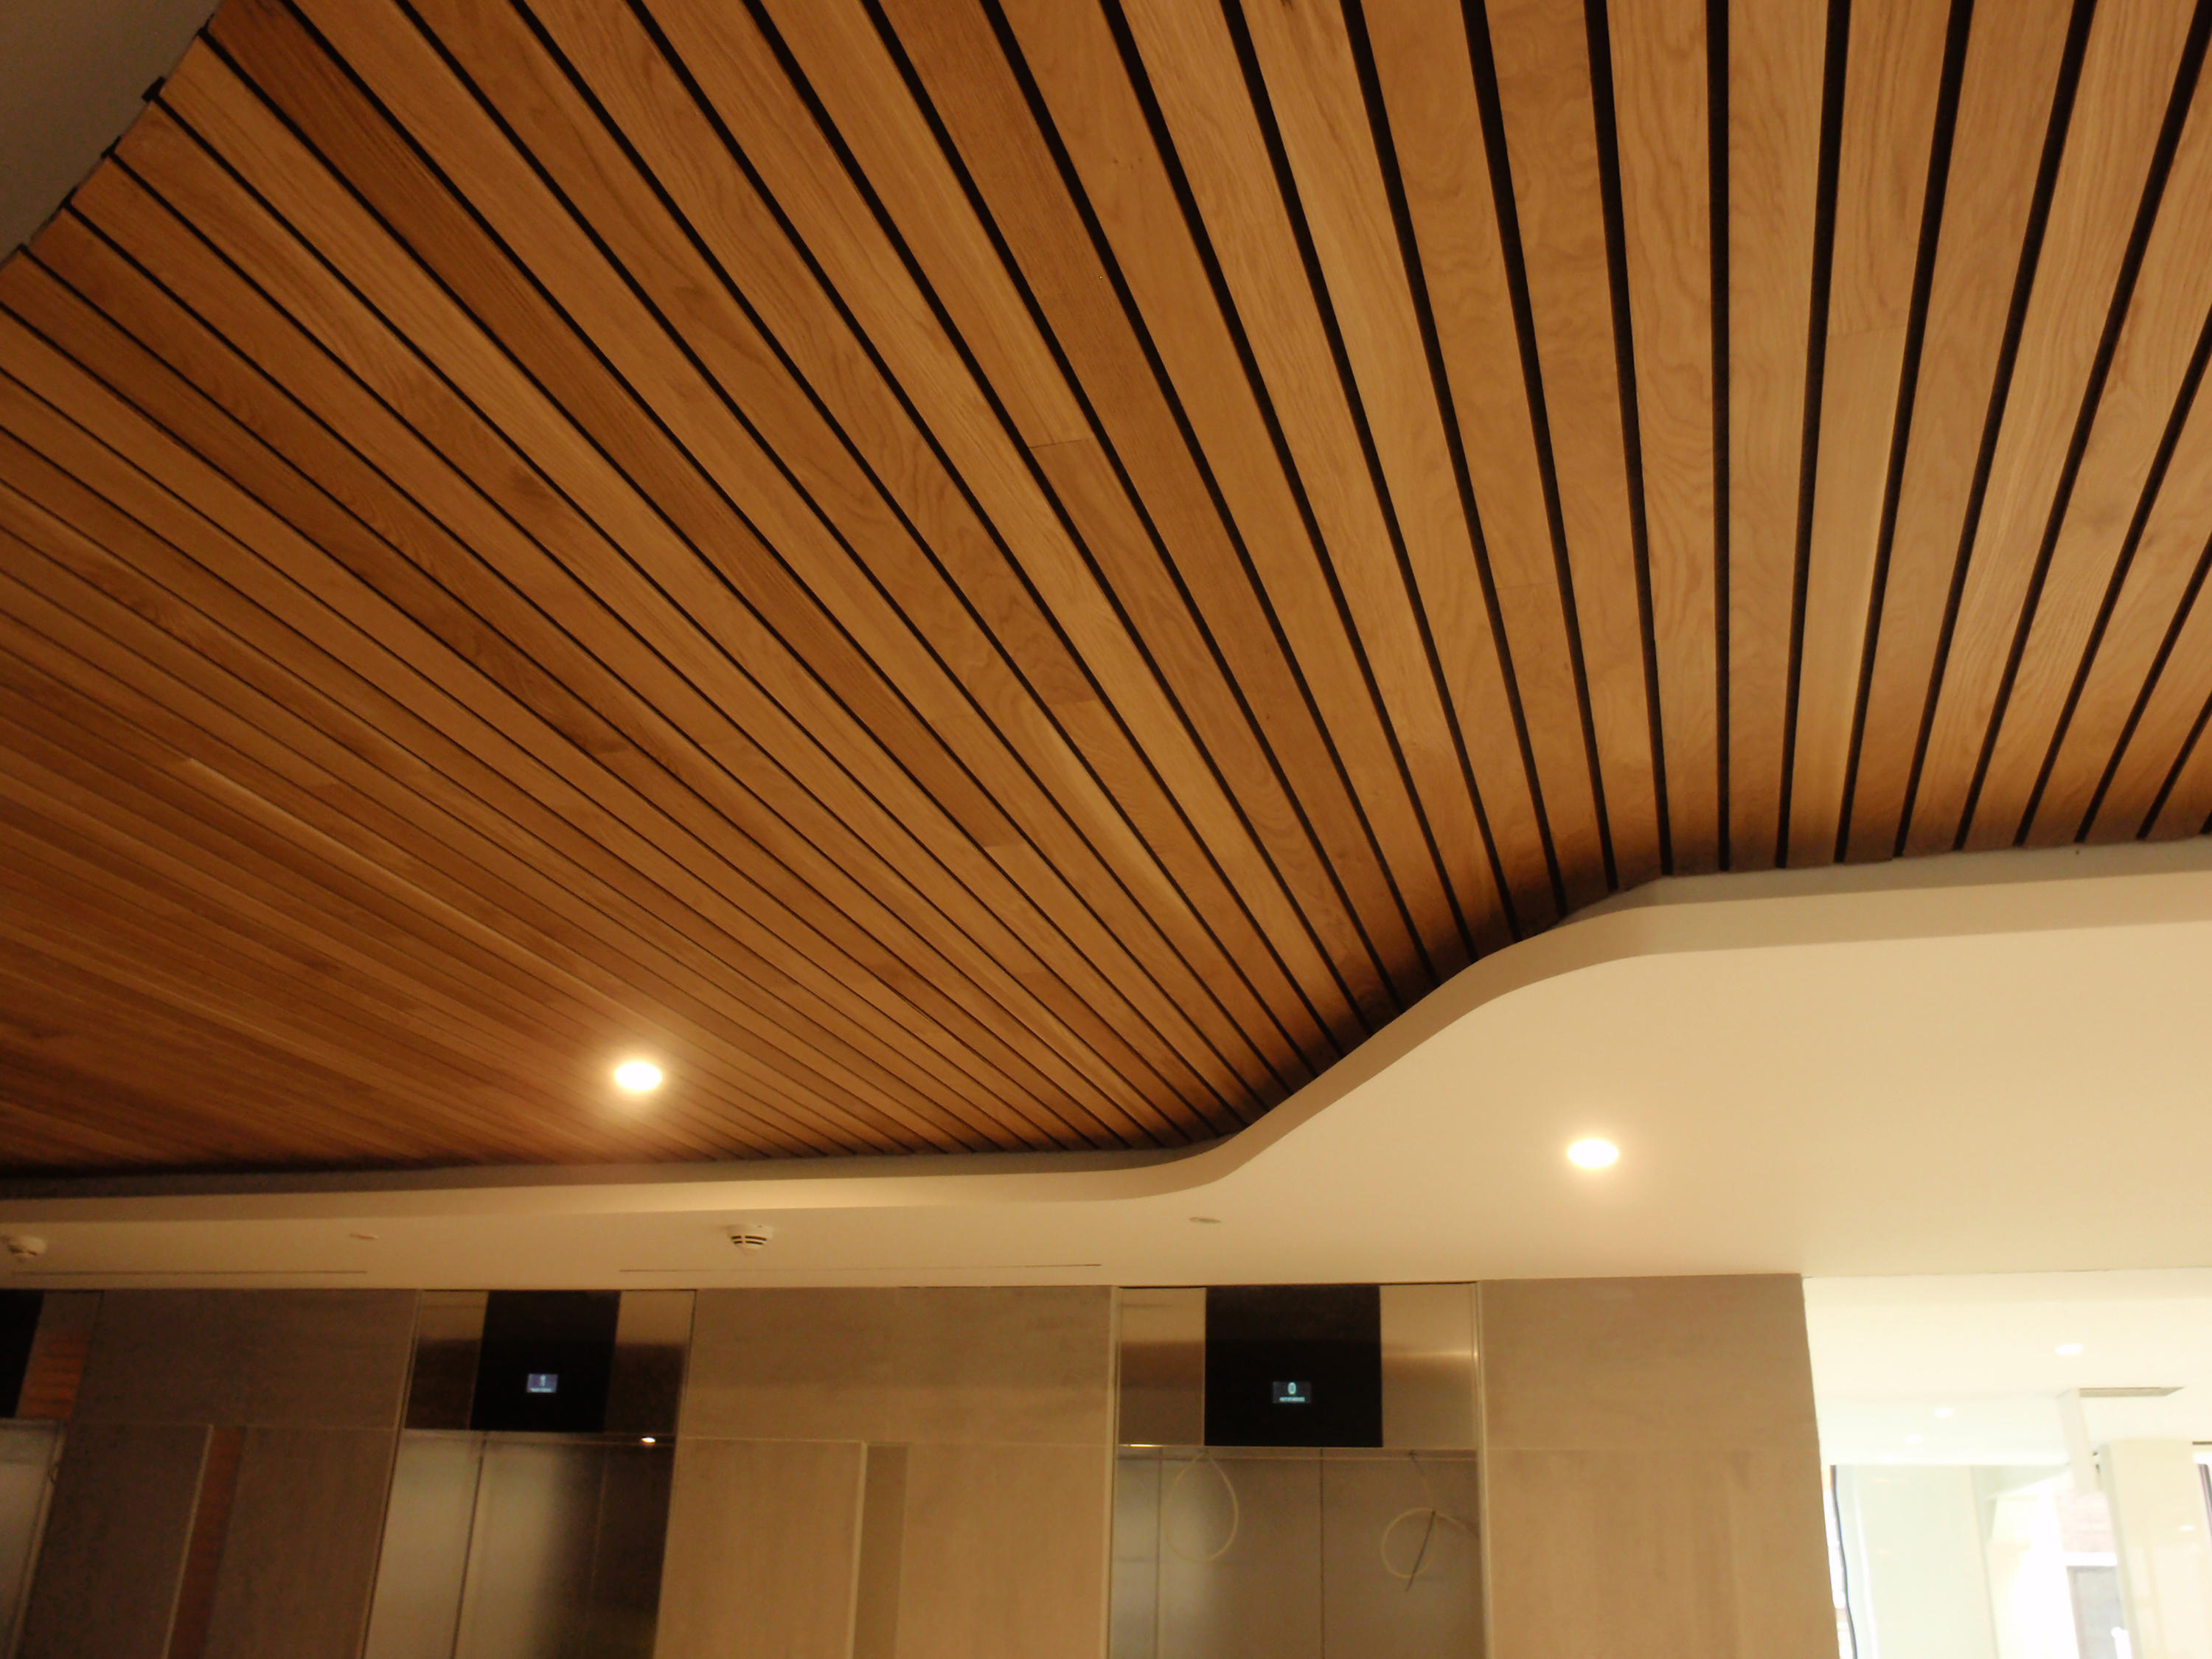 Ideawood idealux lr wood panels from ideatec architonic - Techo de madera interior ...